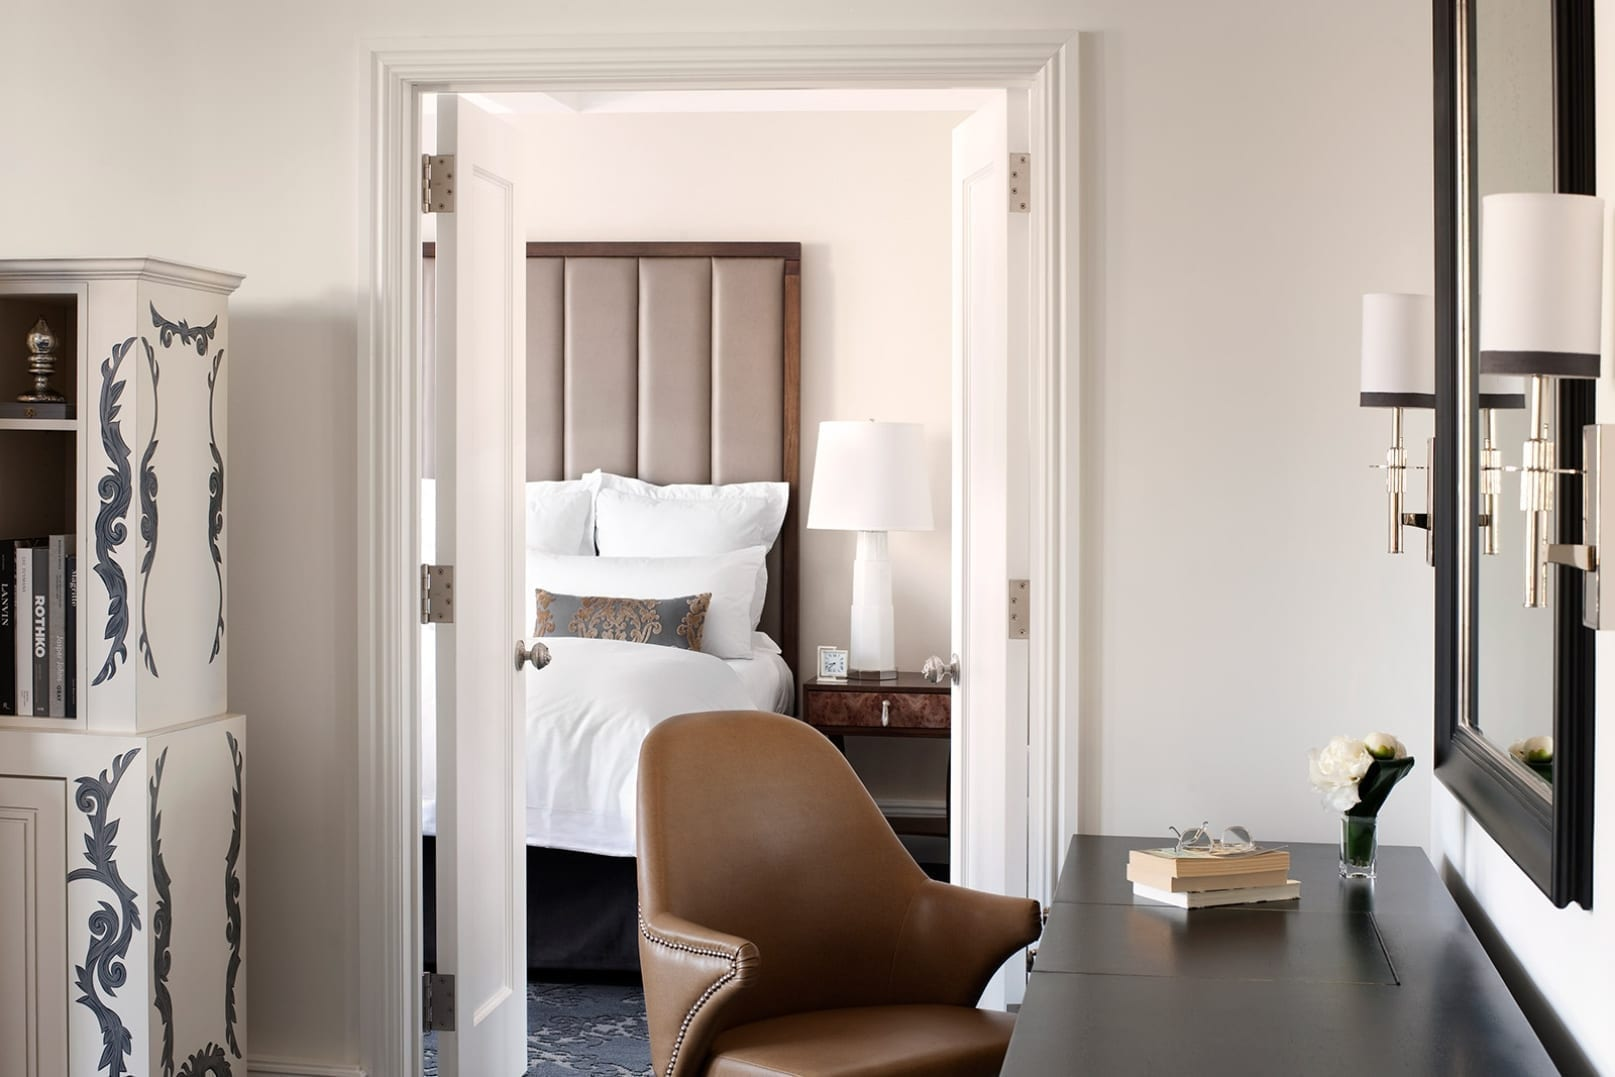 View from the living room of a Ultra Suite, inside The Surrey. A brown chair is seated at the wide black desk area on the right. Open double doors lead to the bedroom.